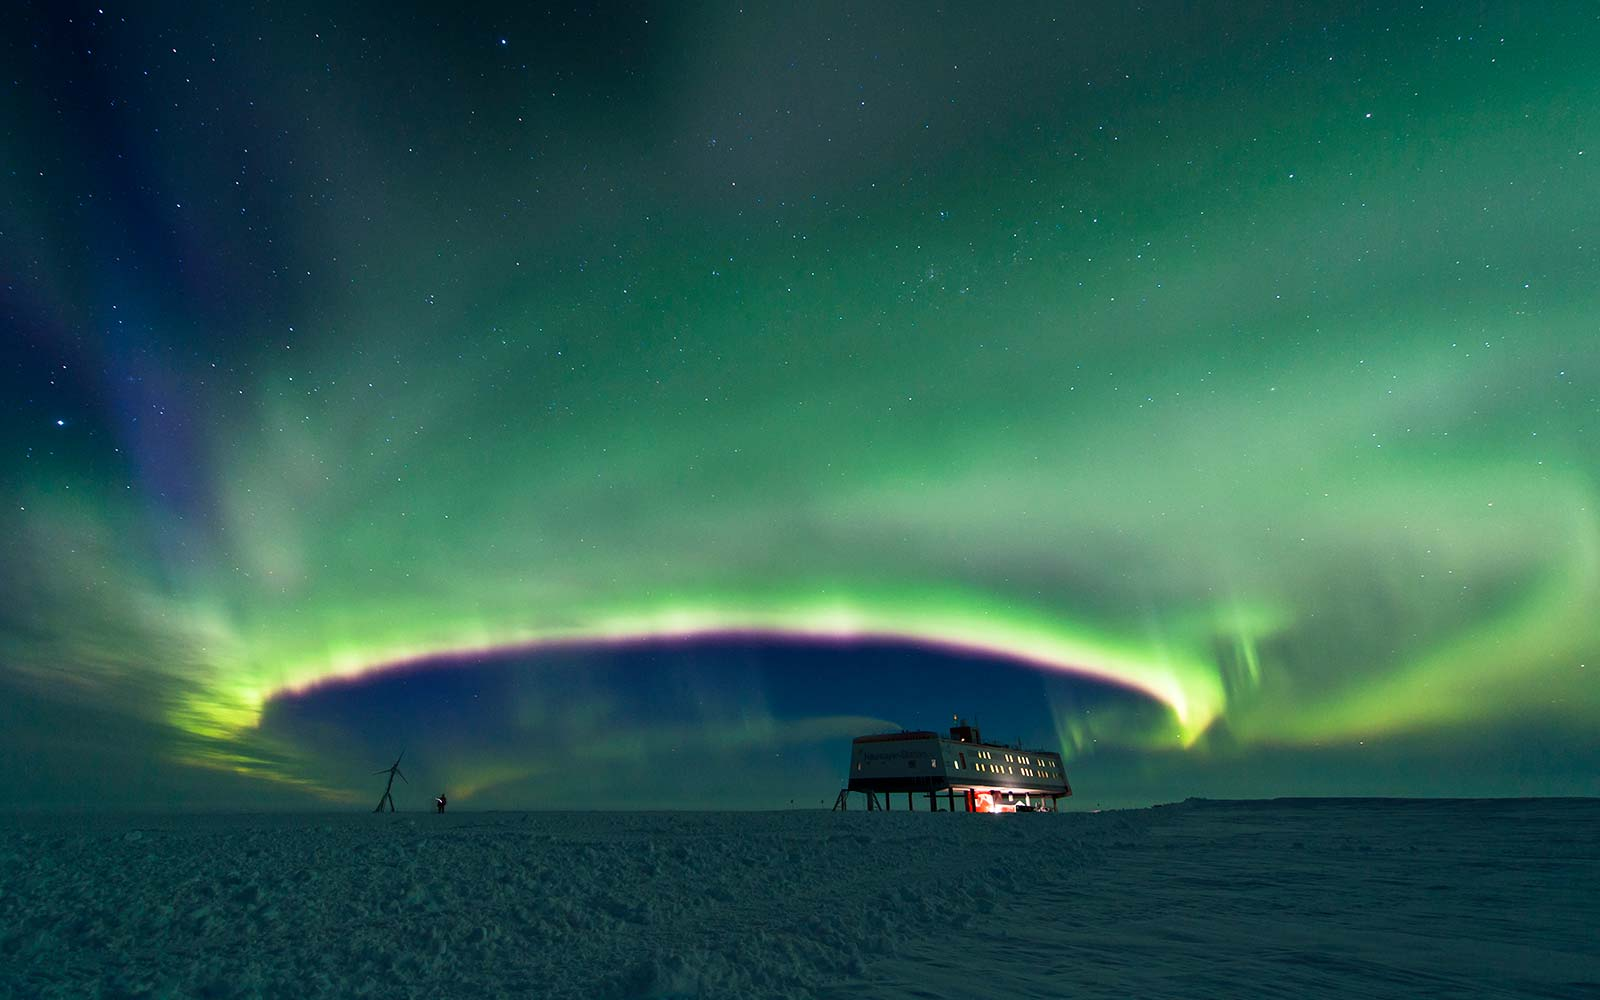 The Aurora Australis displaying over German Antarctic Research Base Neumayer III. It takes an almost perfectly round shape, a sight which is very rare.